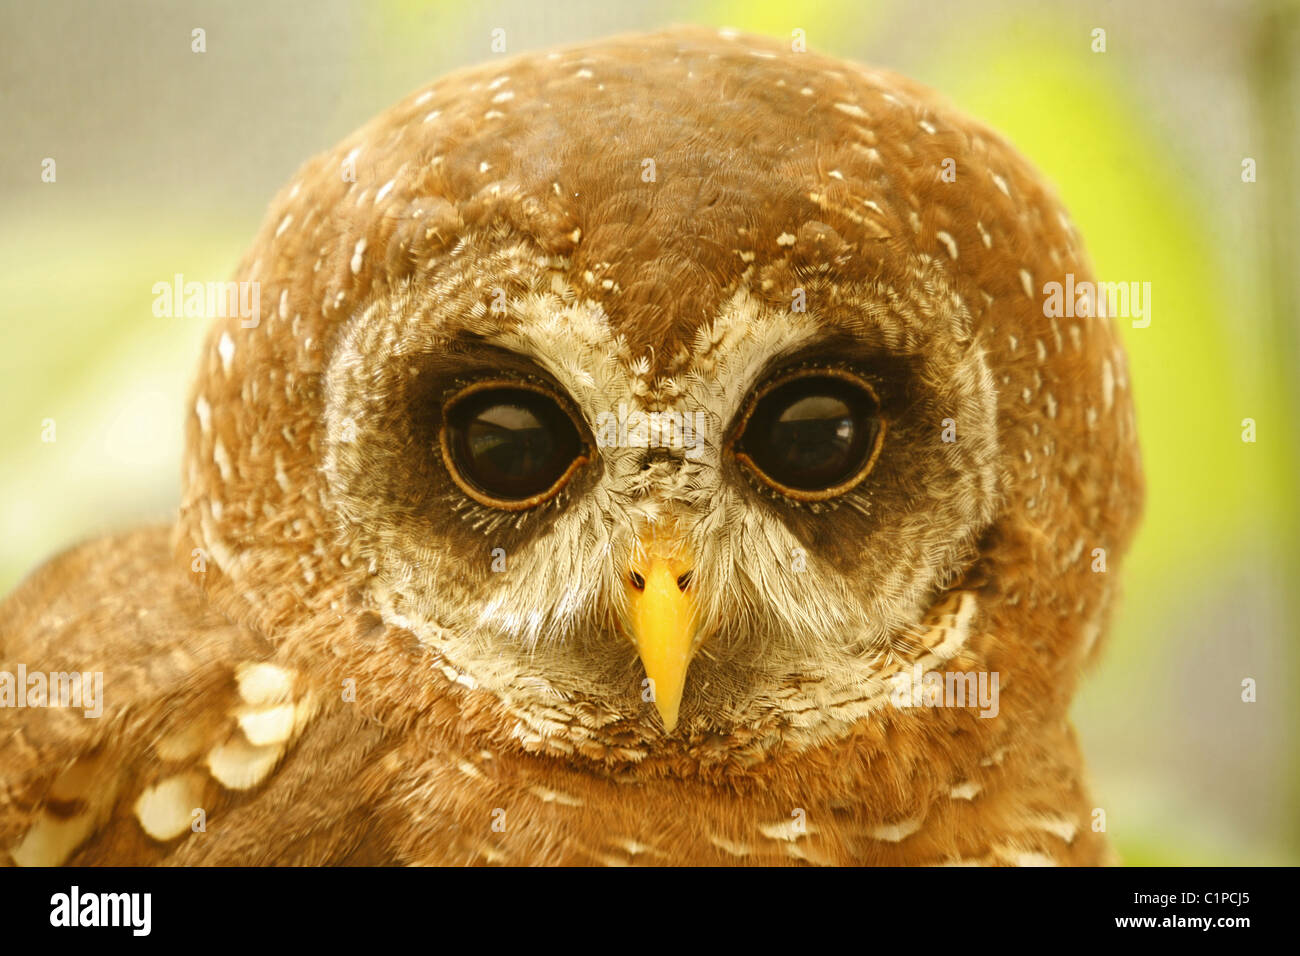 A close-up photograph of  the head of a juvenile wood owl, taken at Eagle Encounters, Spier, South Africa. - Stock Image